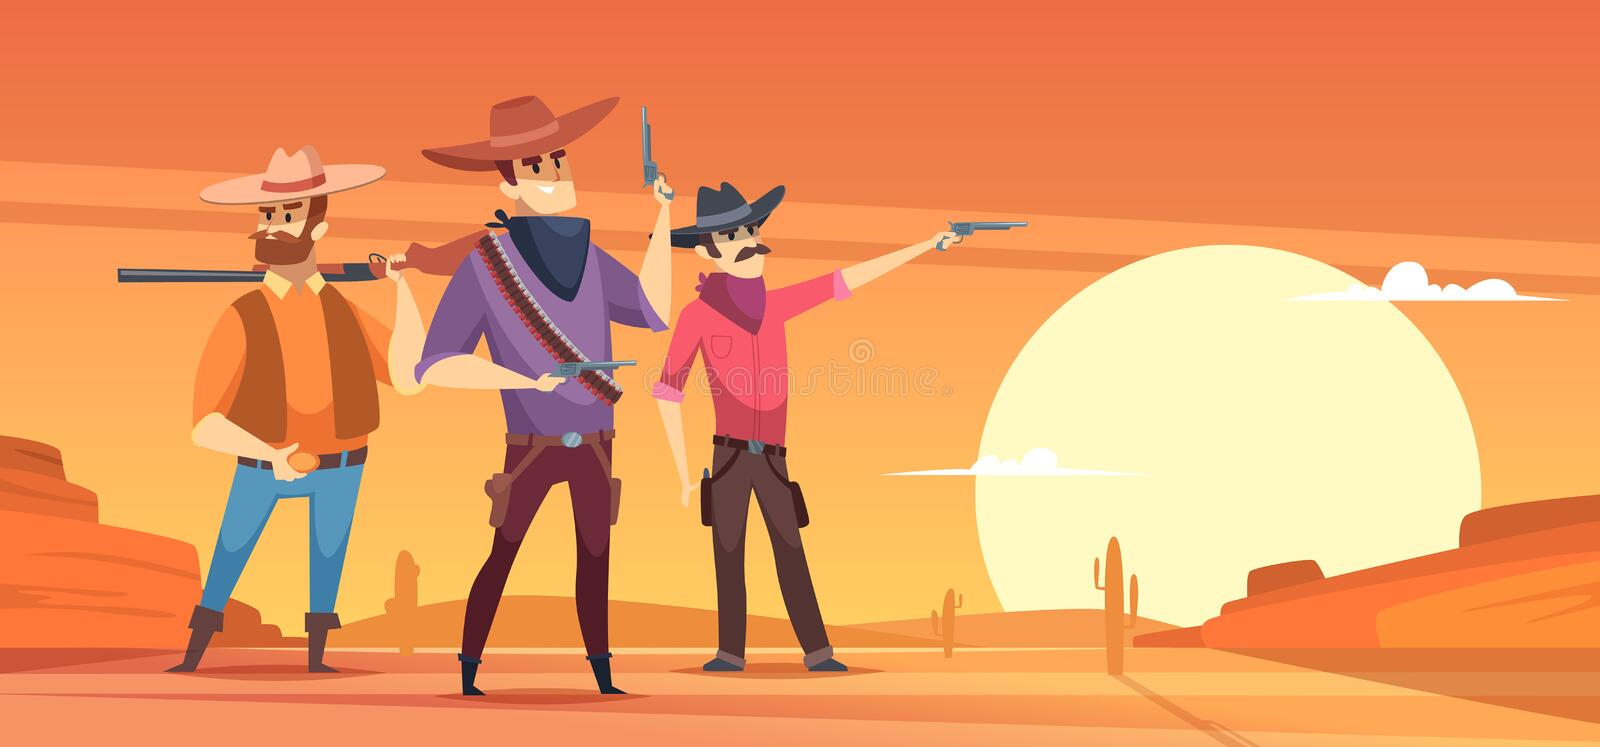 Fond occidental Silhouettes et cowboys de dessert sur des illustrations de vecteur de faune de chevaux illustration libre de droits